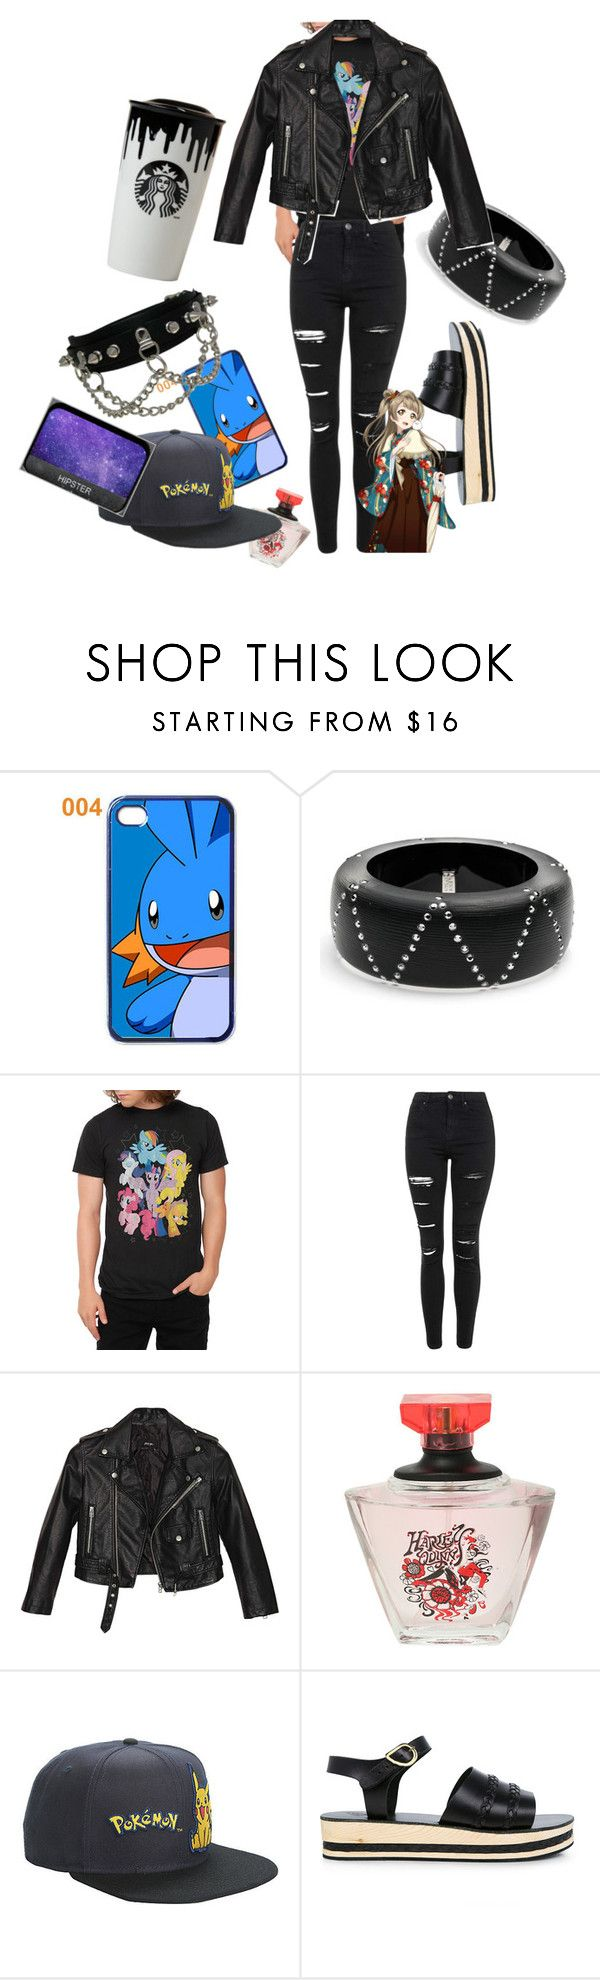 """""""red flags and long nights"""" by toyherb ❤ liked on Polyvore featuring Alexis Bittar, My Little Pony, Topshop, Nasty Gal, Ancient Greek Sandals and Band of Outsiders"""